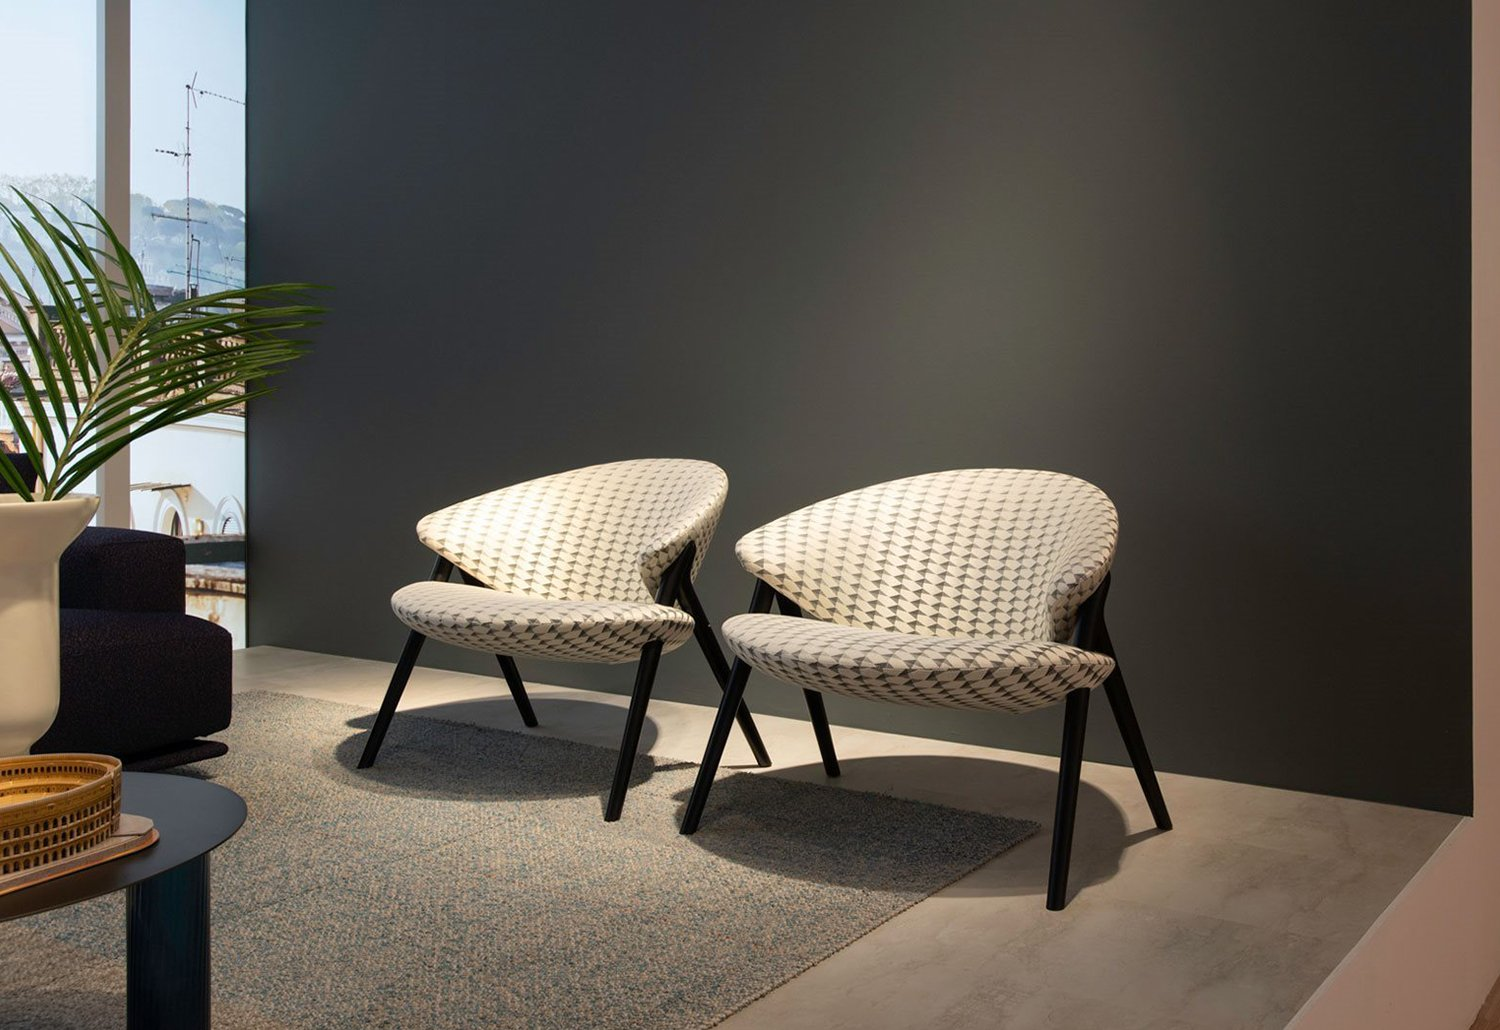 Hotel Lobbies and Waiting Spaces: A List Of 20 Modern Armchairs  modern armchairs Hotel Lobbies And Waiting Spaces: A List Of 20 Modern Armchairs Hotel Lobbies and Waiting Spaces A List Of 20 Modern Armchairs 16